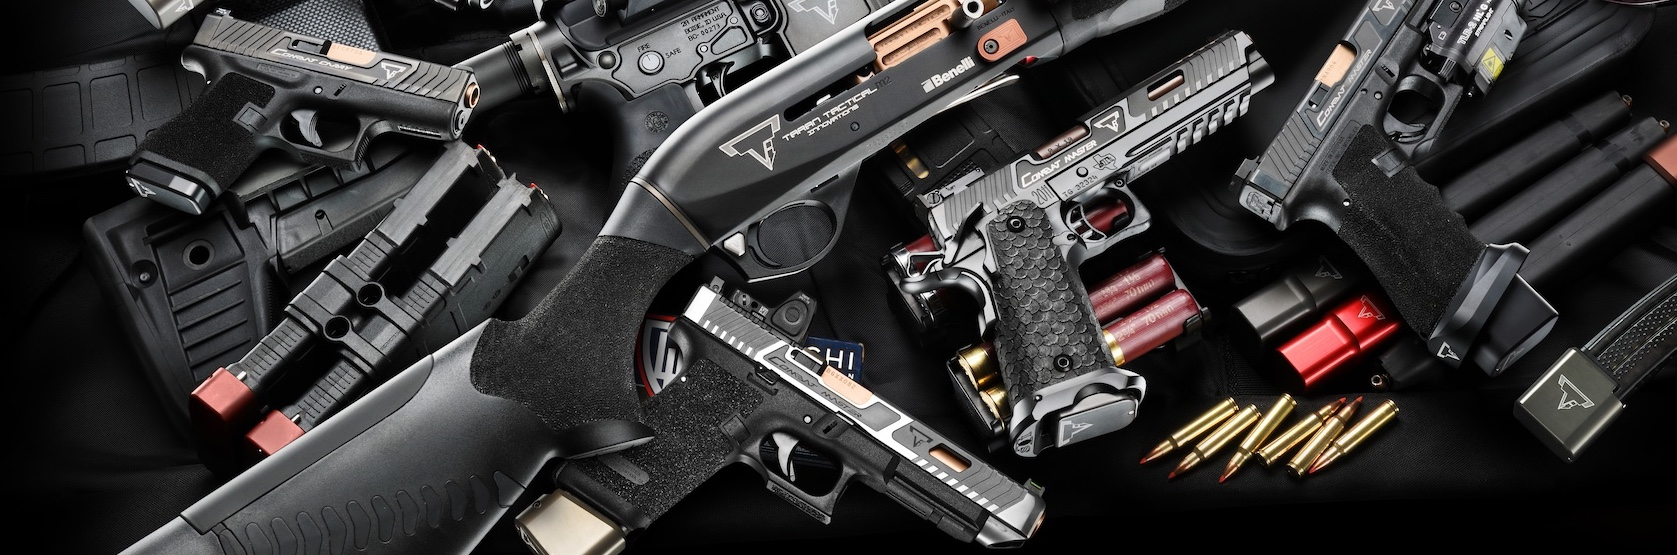 Taran Tactical Innovations Glock Pistol Parts Diagram Color Coded Showing Frame Pins Springs